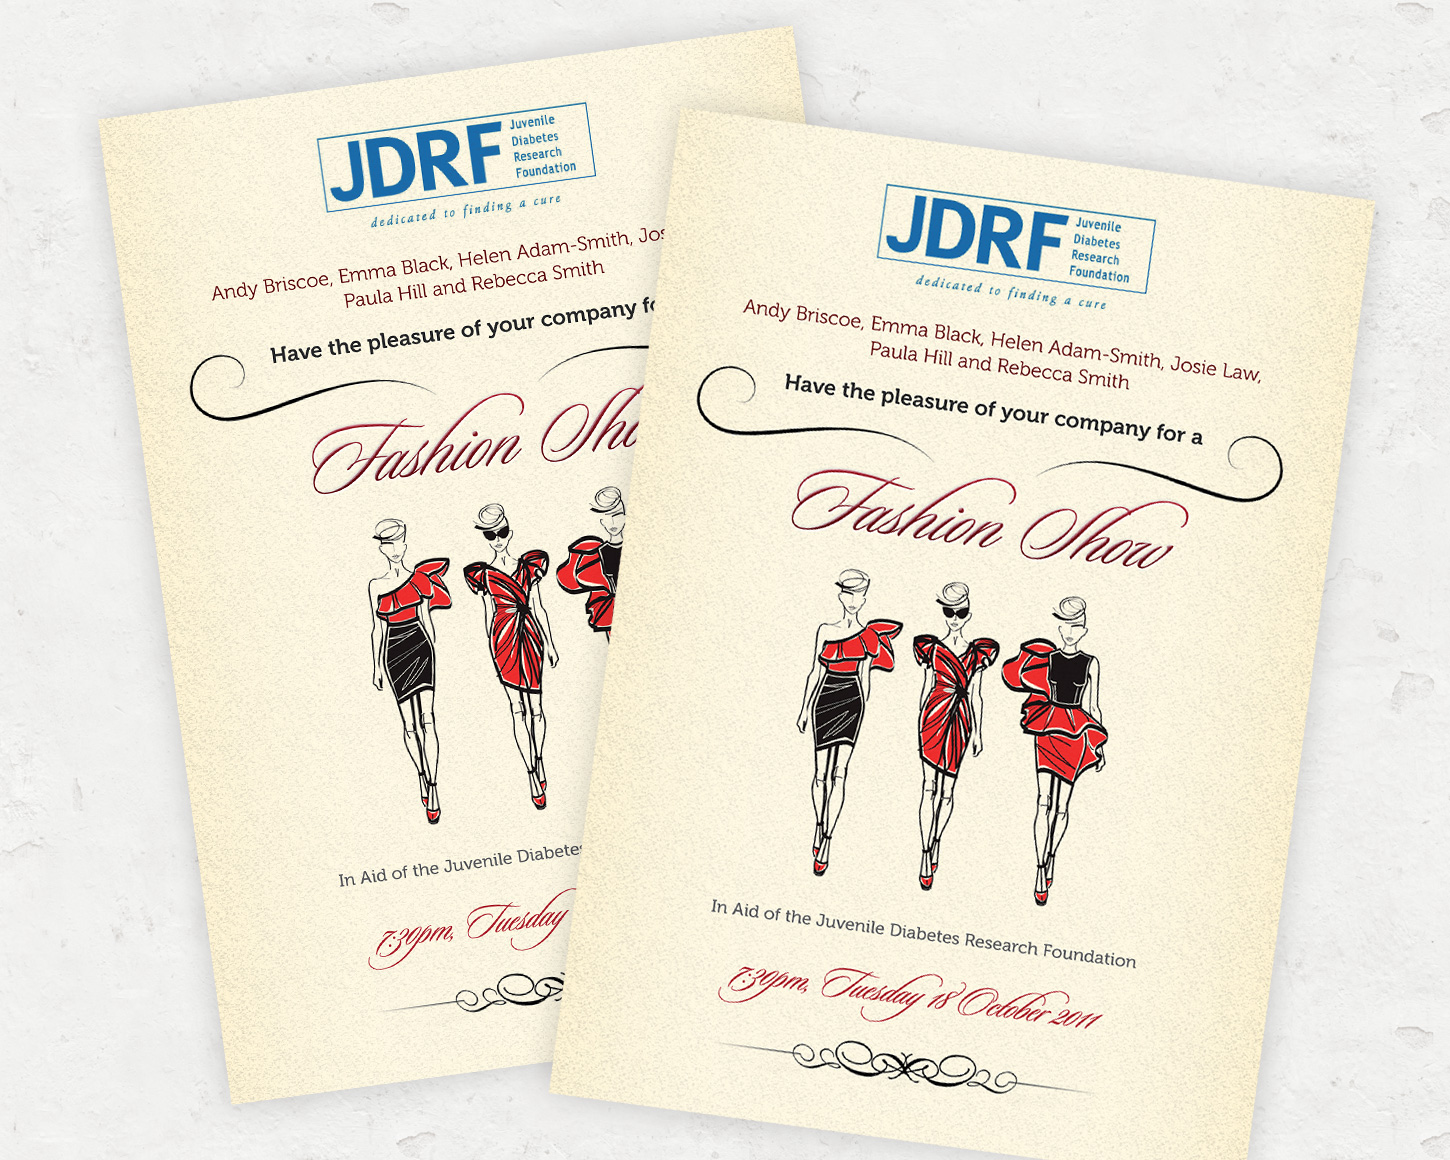 JDRF email